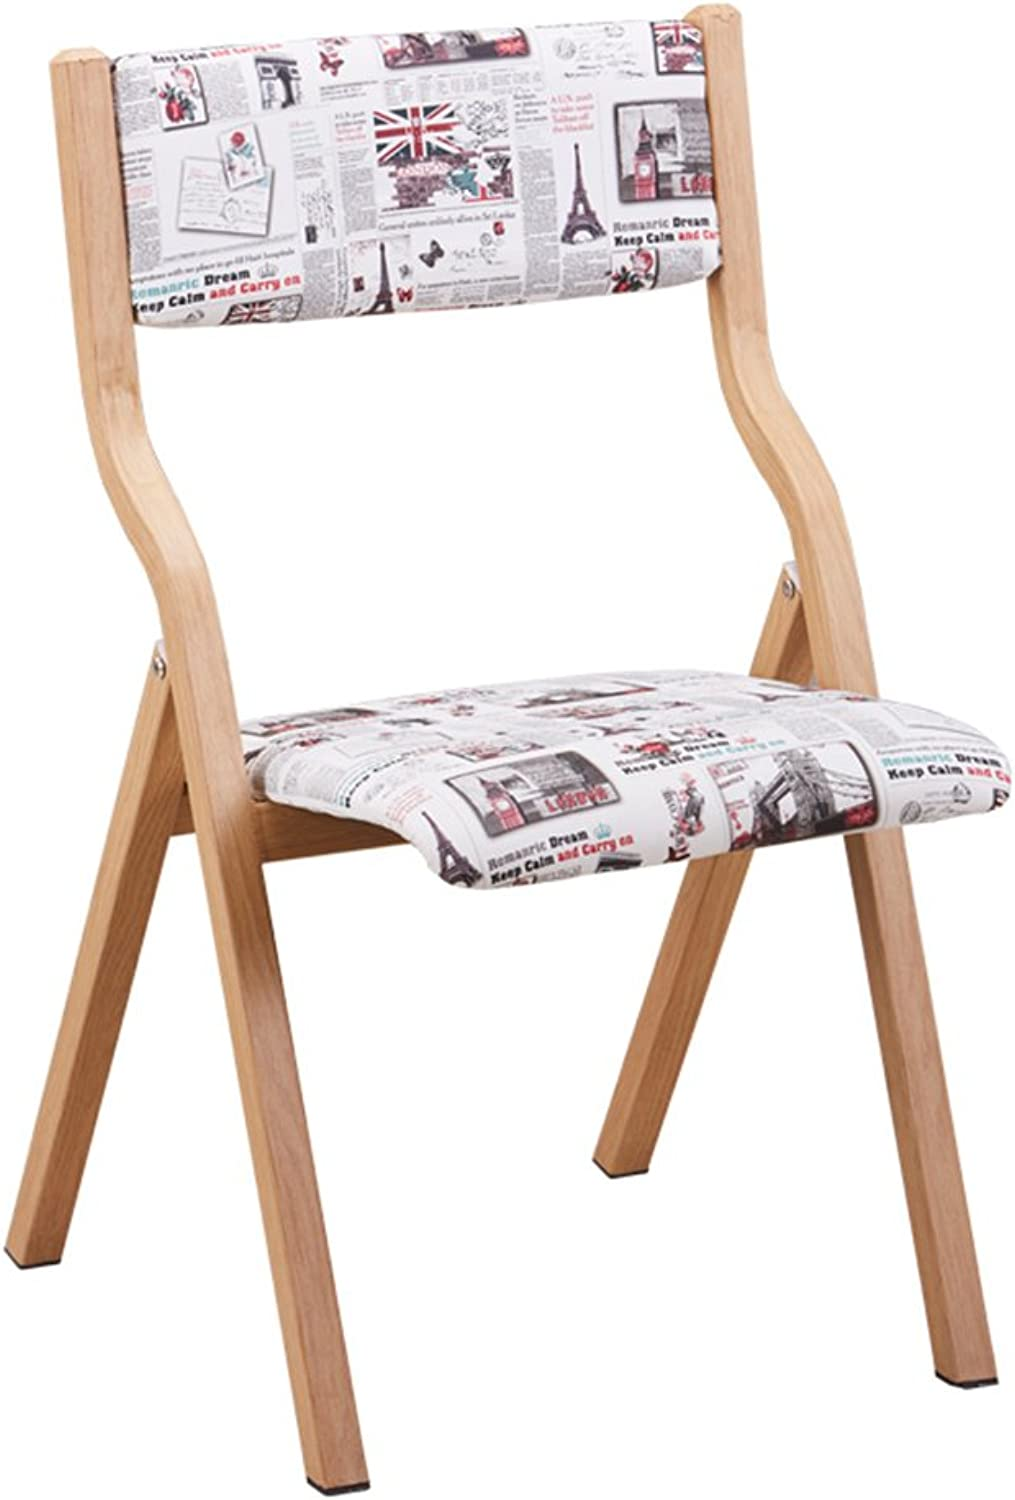 MAZHONG Barstools Imitation Wood Folding Chair Family Table Folding Chair Simple Modern Chair Modern Chair (color   D)